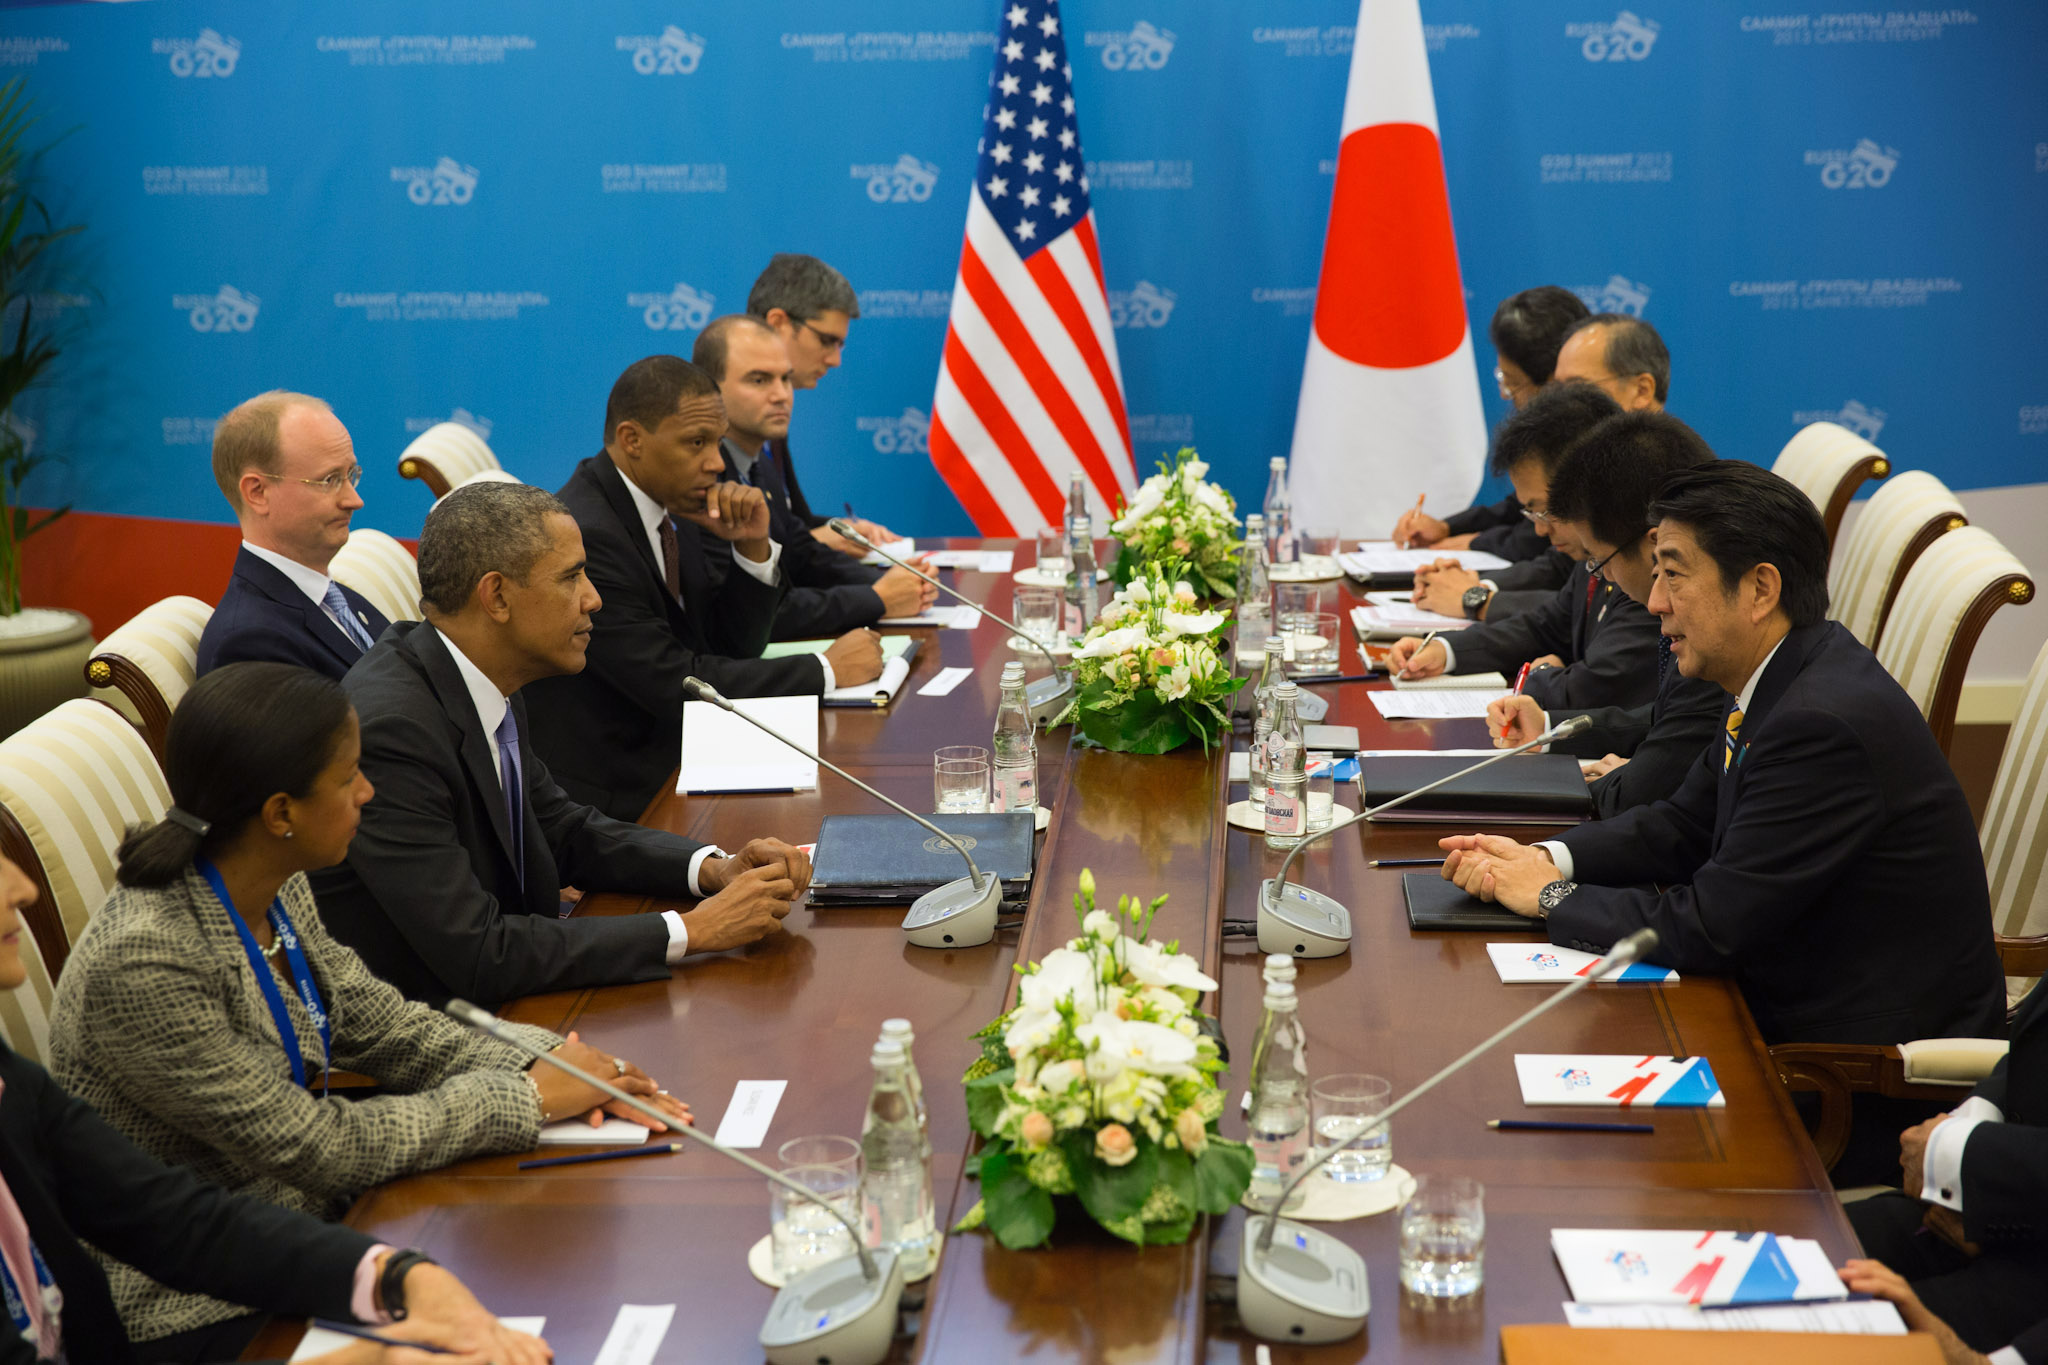 President Barack Obama, left, and Japan's Prime Minister Shinzo Abe, right, during their bilateral meeting at the G20 Summit